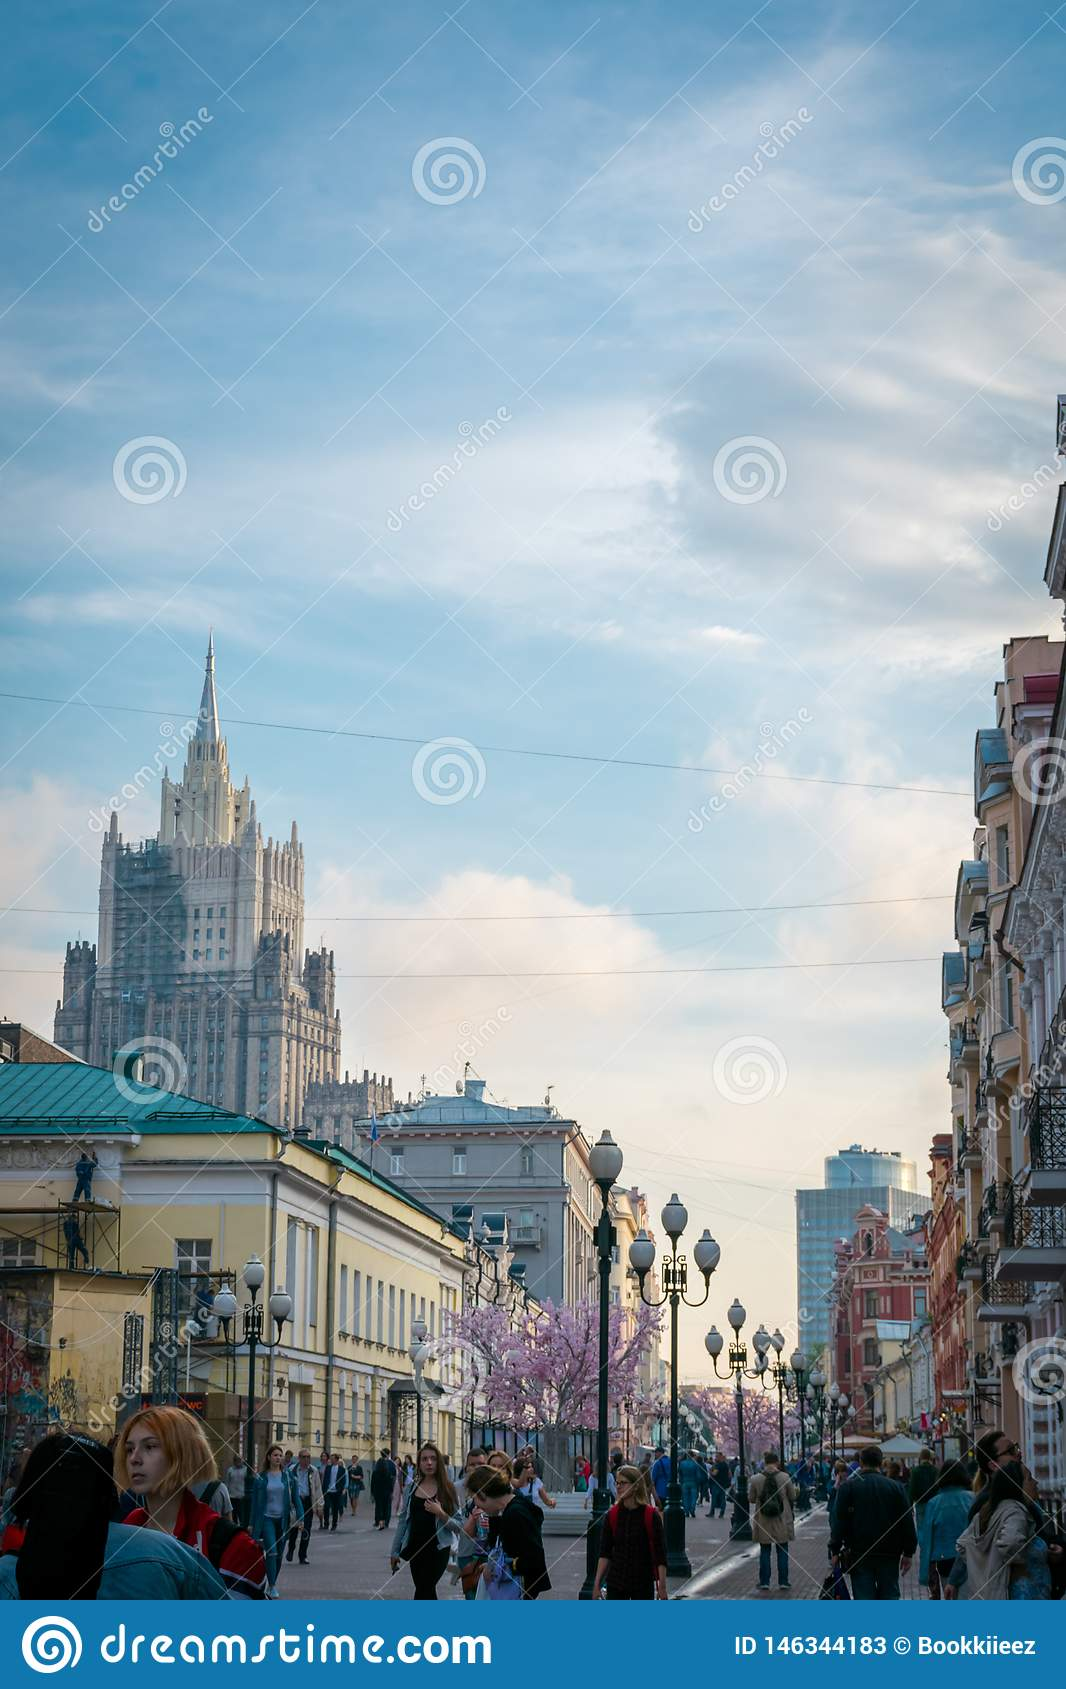 Arbat street, one of the main tourist attractions of Moscow, Russia.